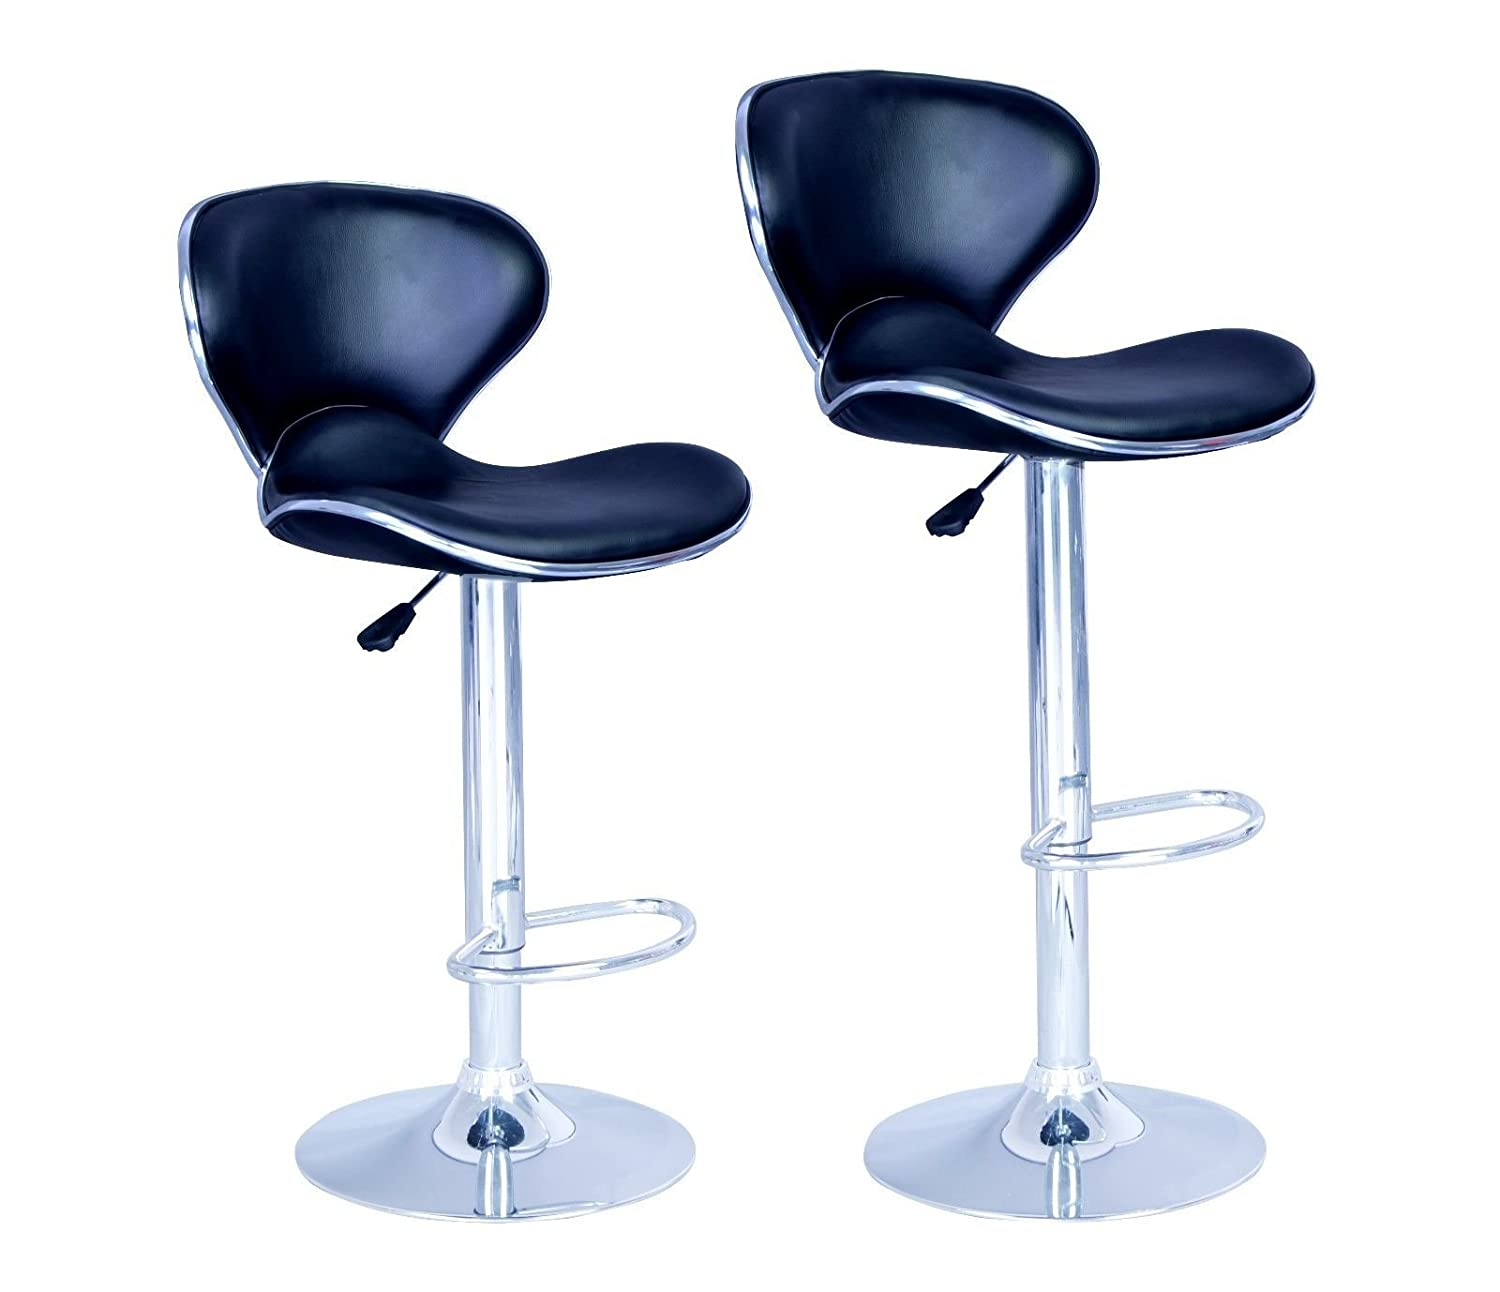 BestOffice New Modern Swivel Bar Stools